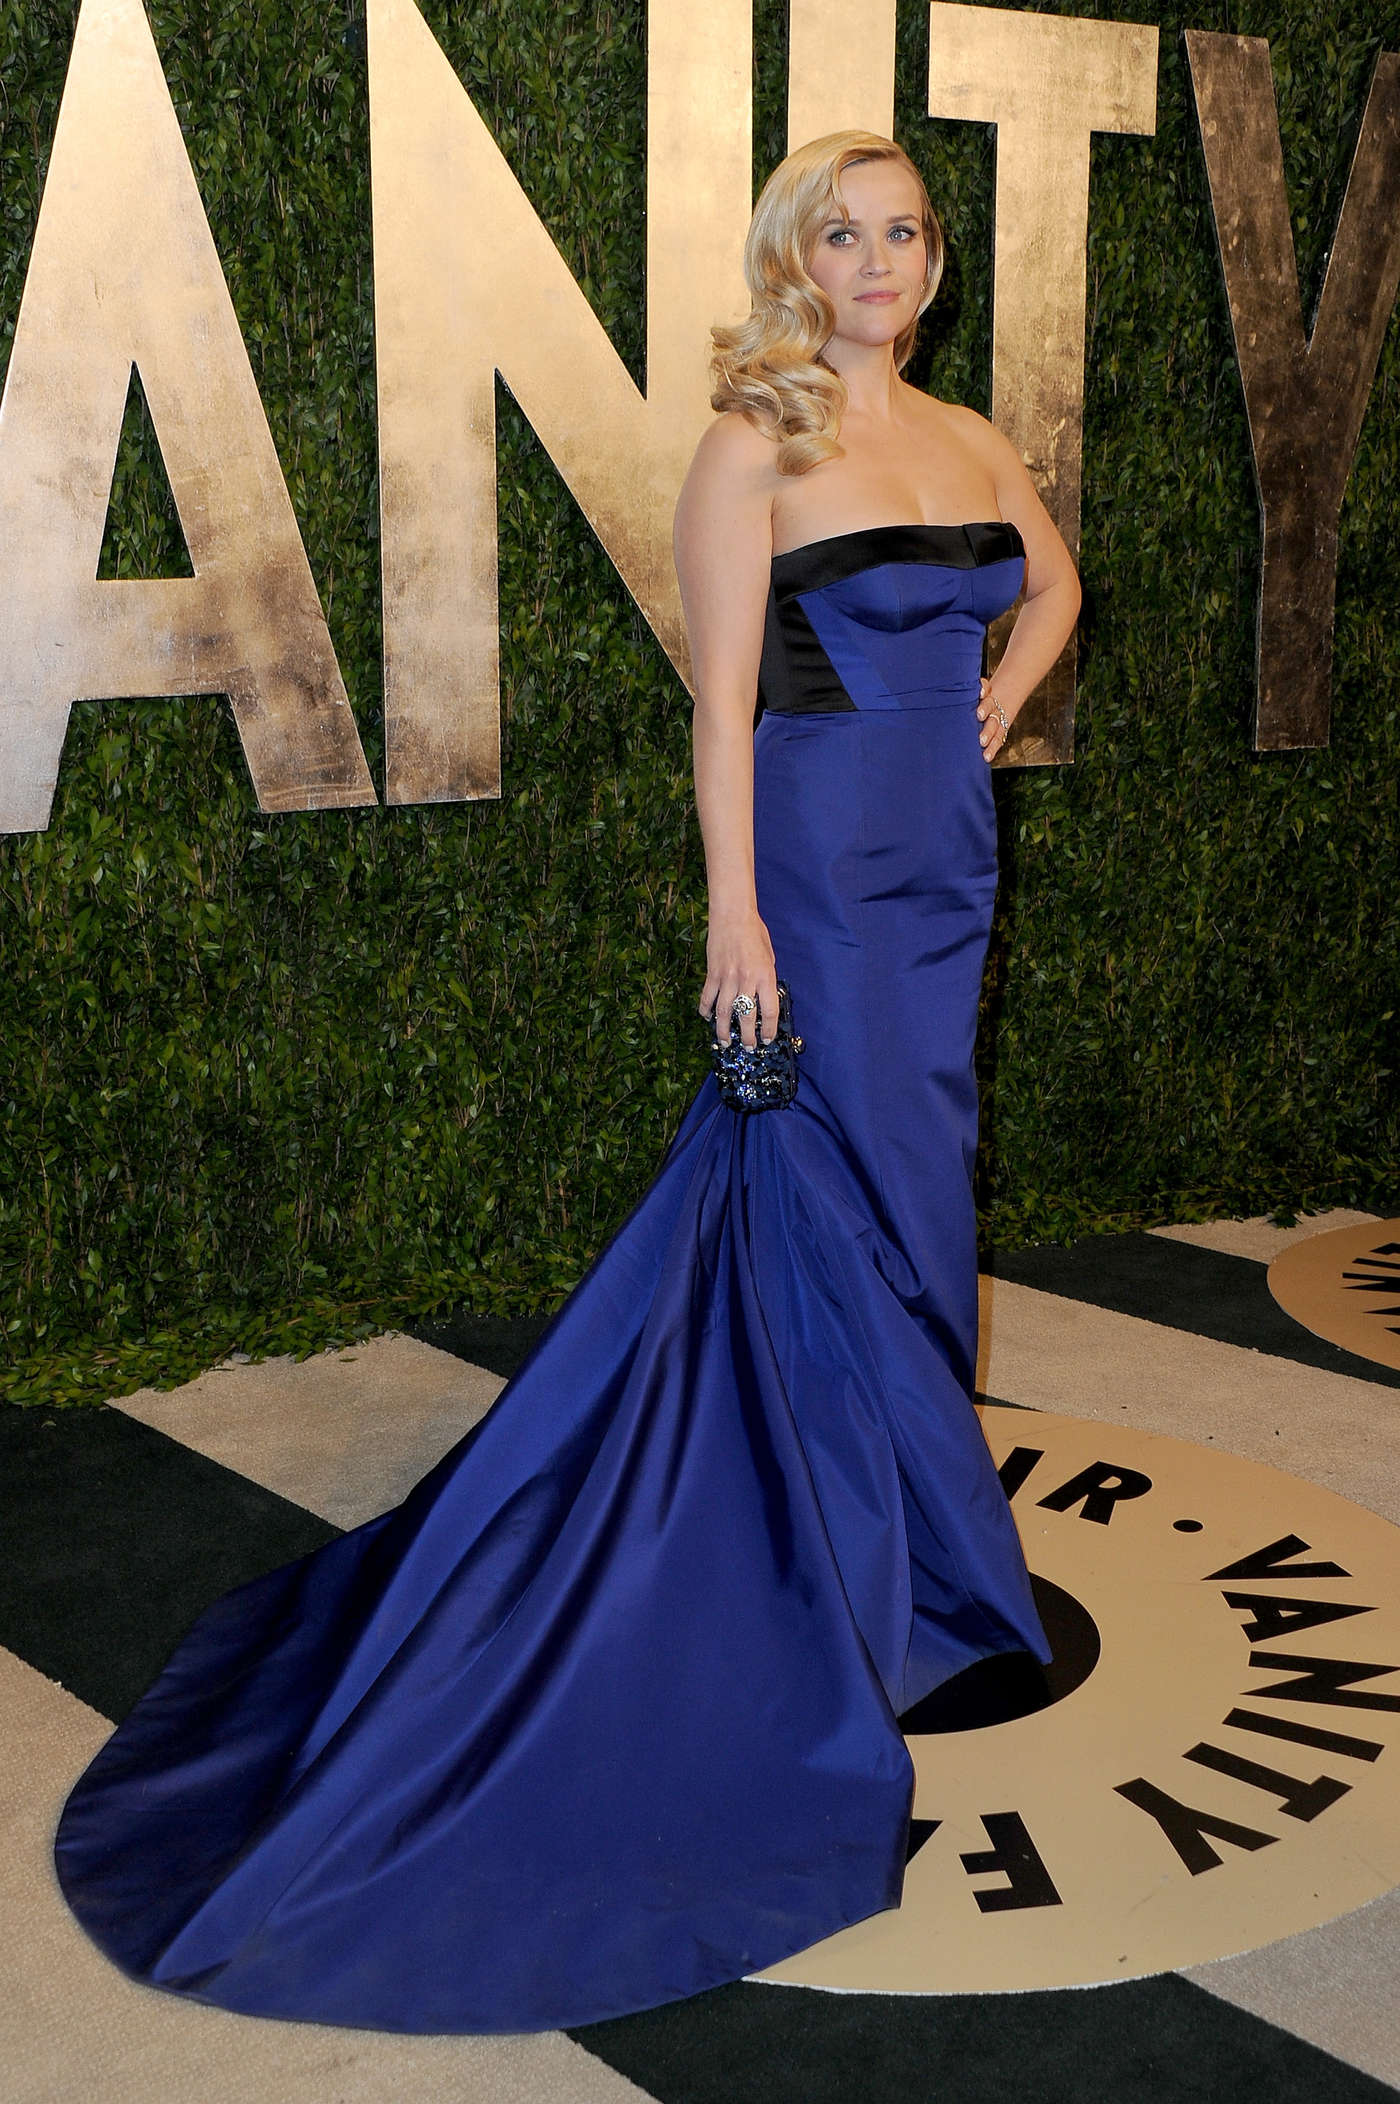 Reese Witherspoon Oscar 2013 Vanity Fair Party 02